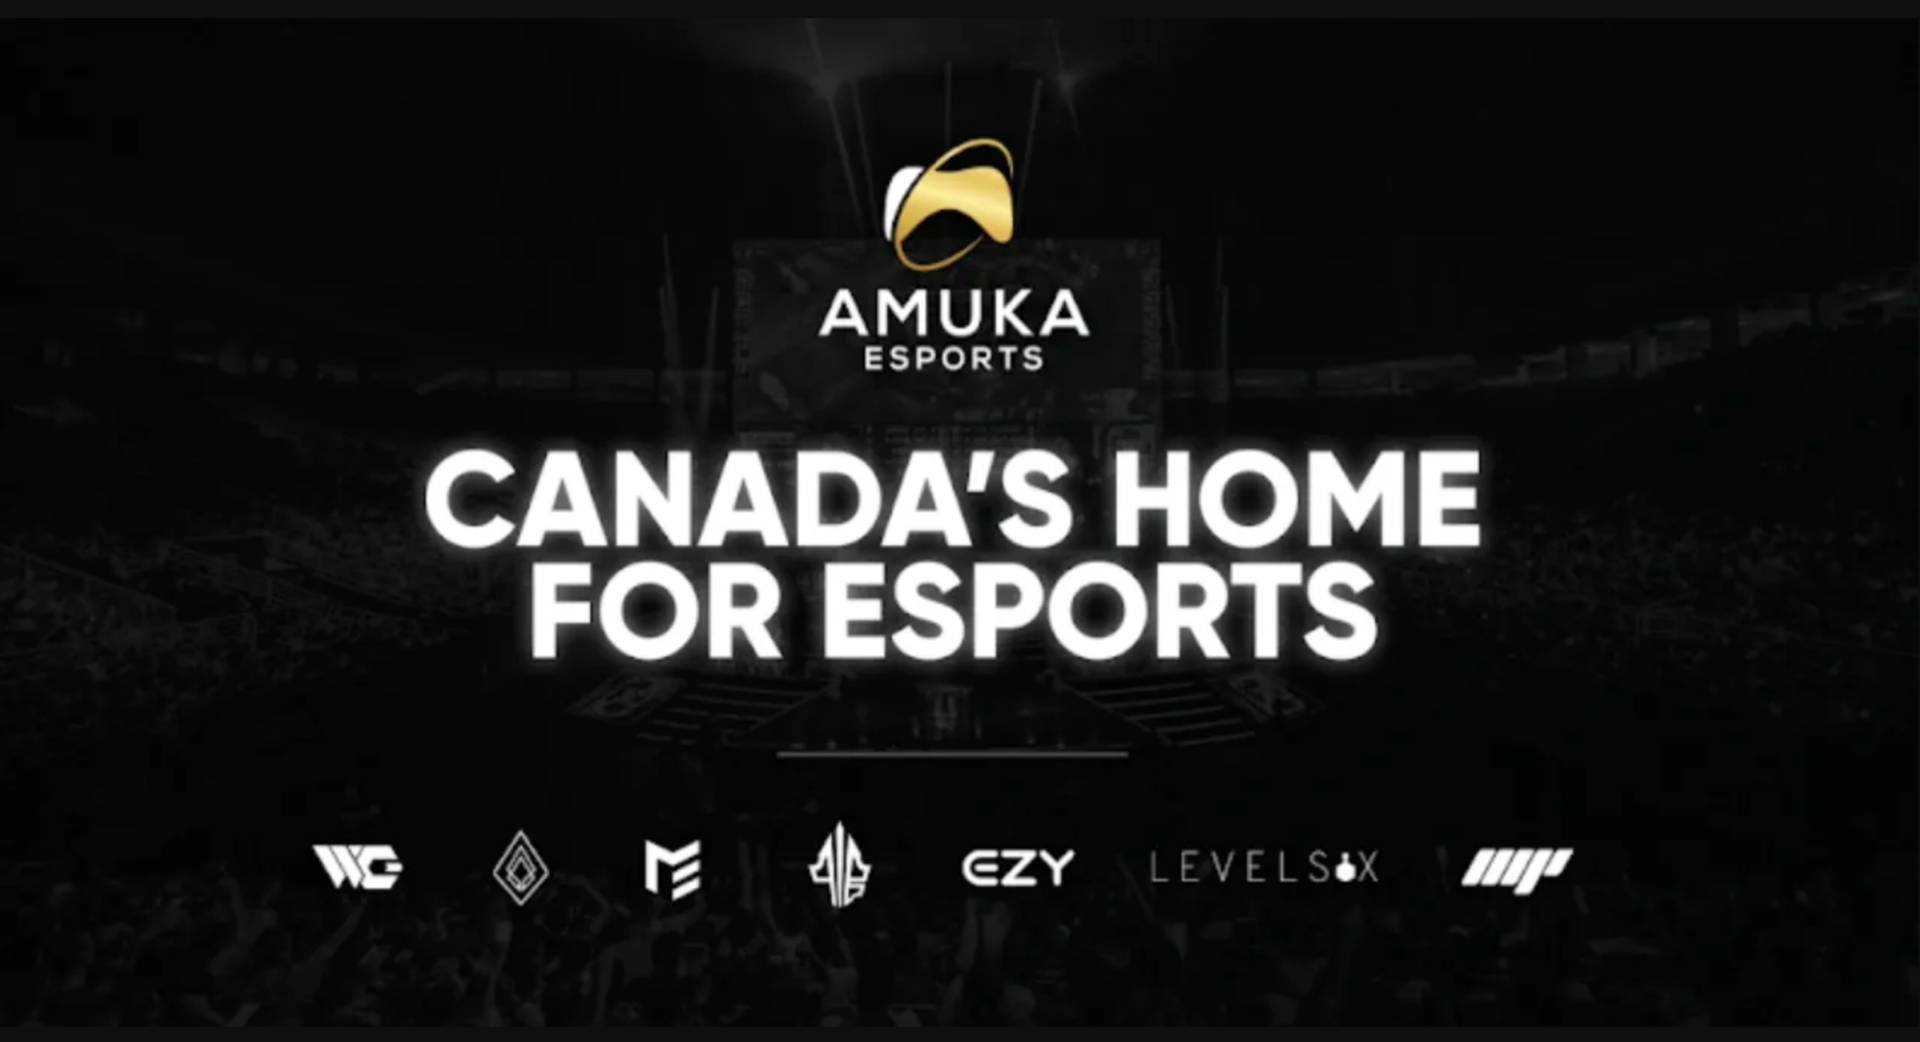 Investment Opportunity From Amuka Esports